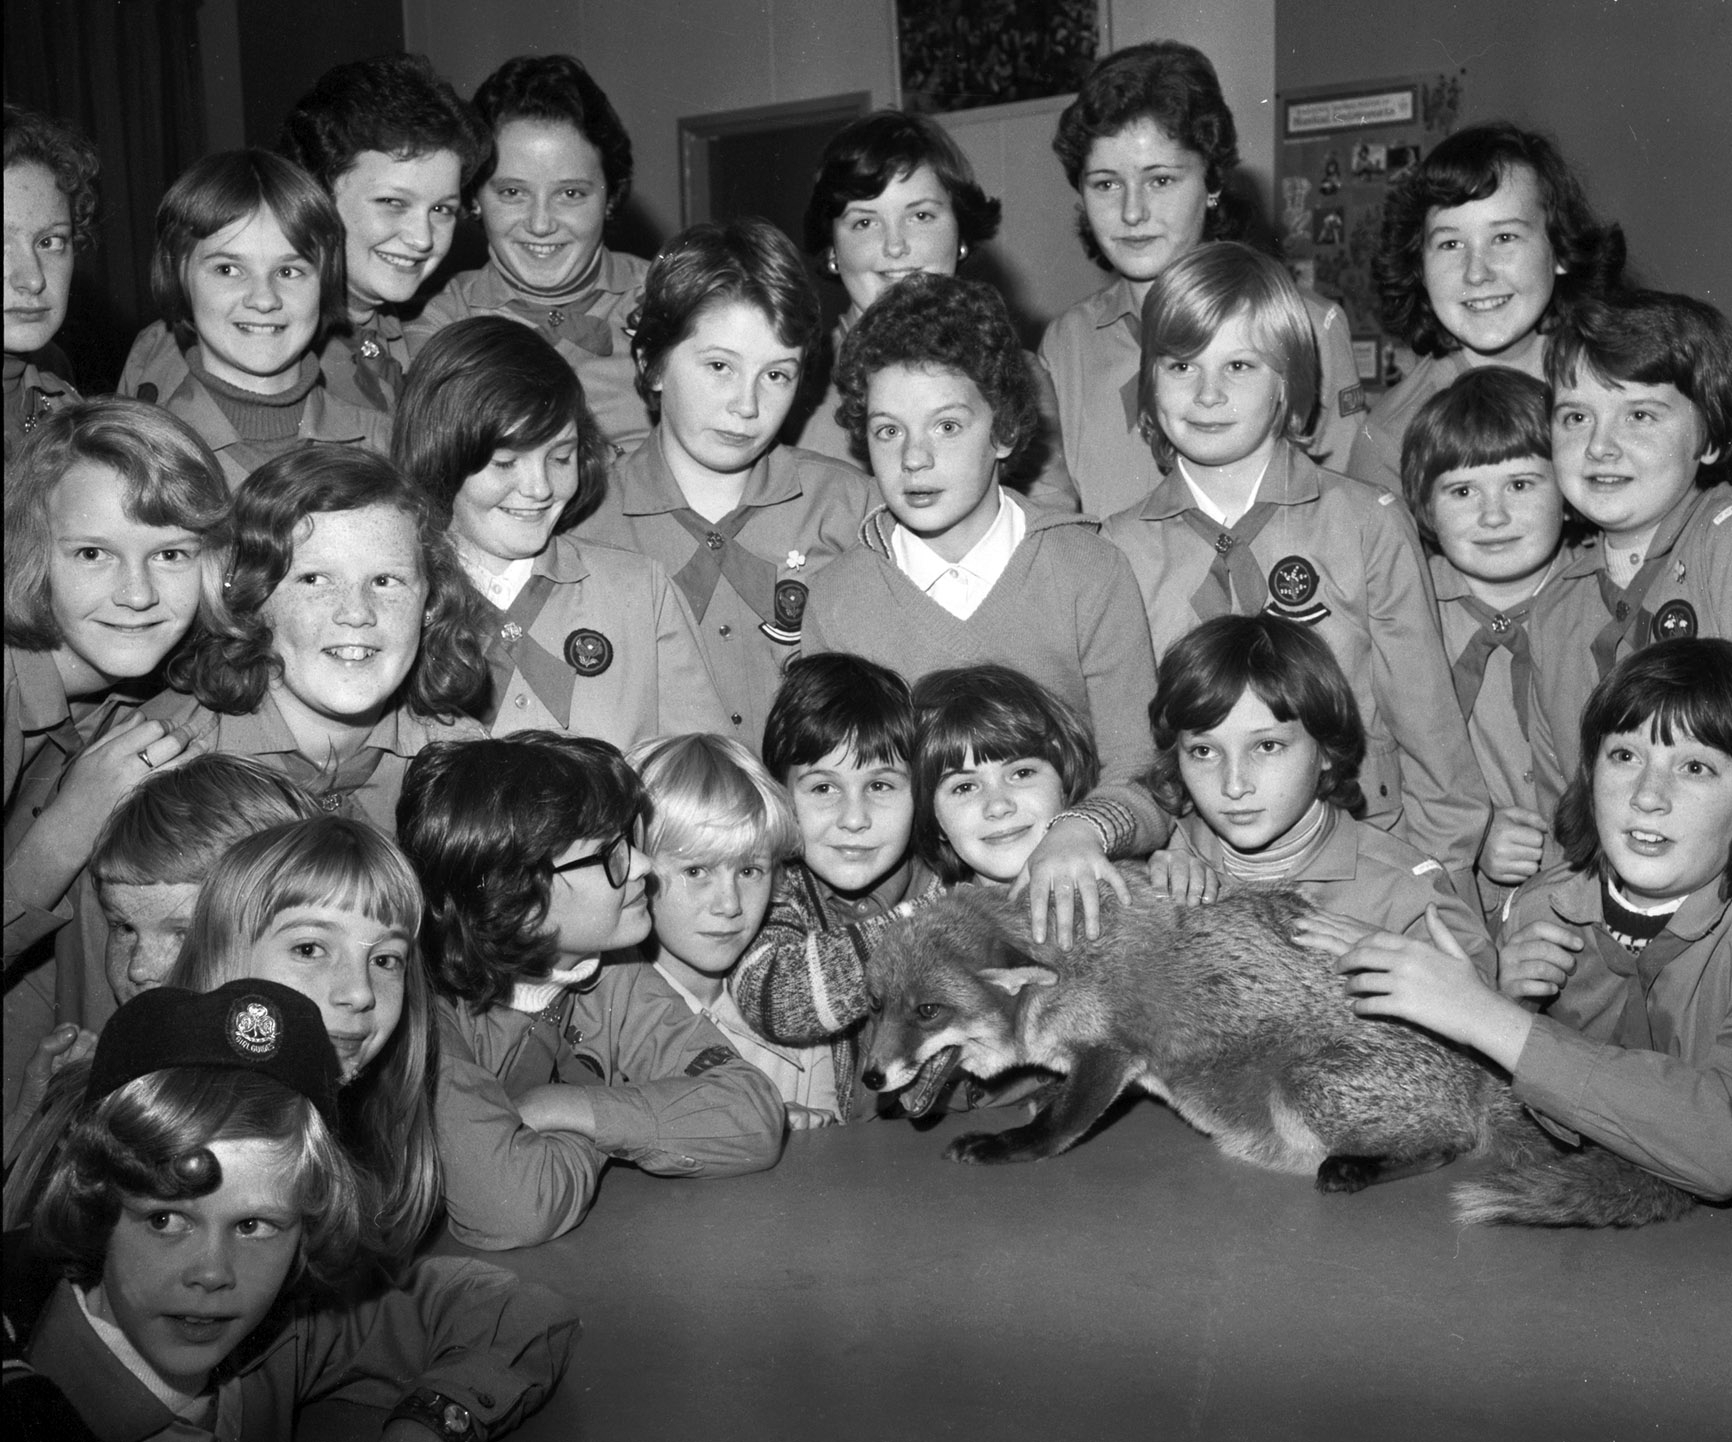 A happy moment for these members of the 2nd Newhills Guide Company at Hillocks School, Bucksburn, in October 1976, as they had a special visitor - Promise, the Aberdeen Zoo fox they had adopted two years previously.